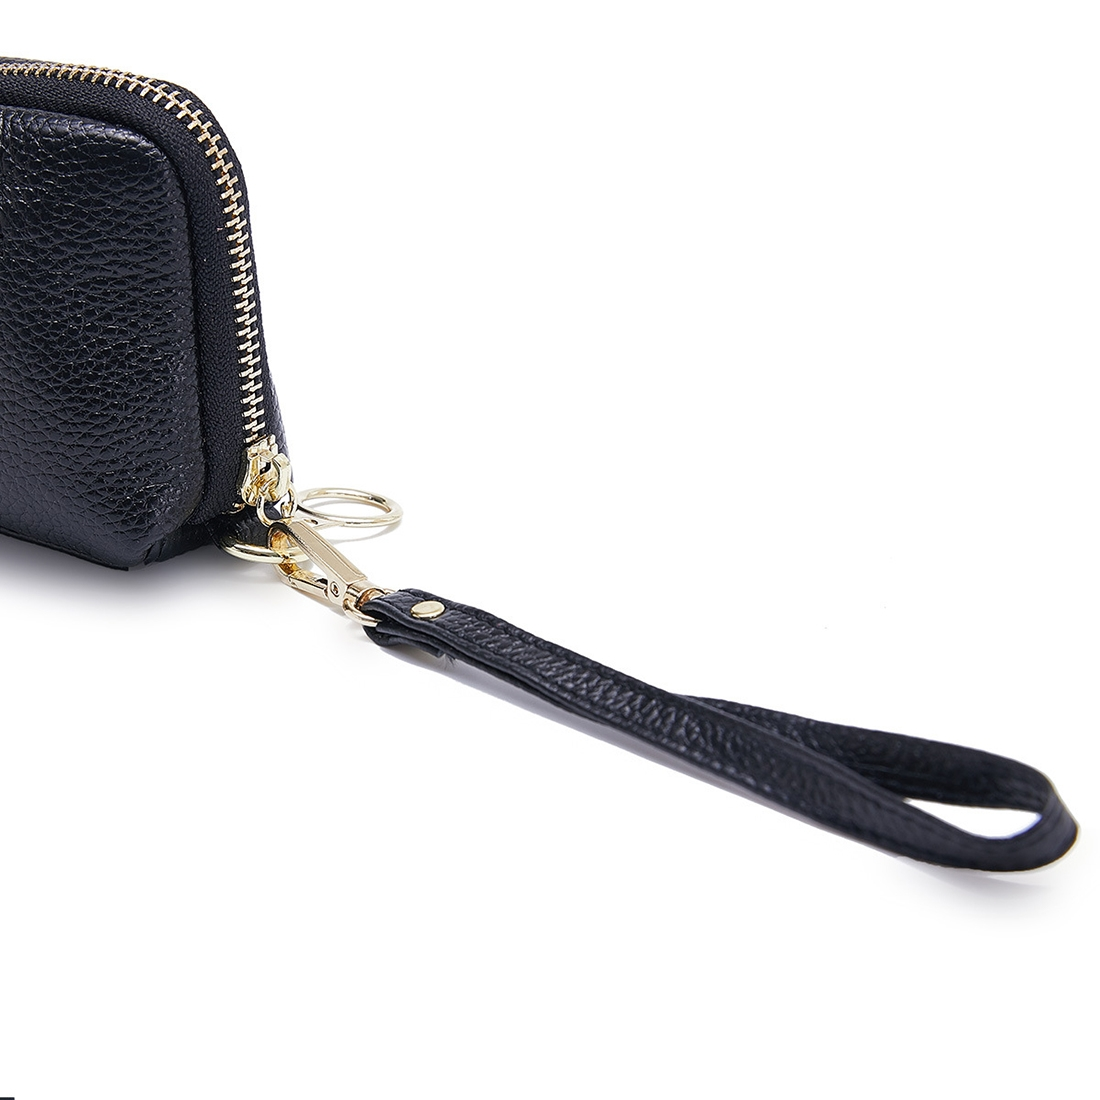 2-Folding Square Genuine Leather Handbag (Black)